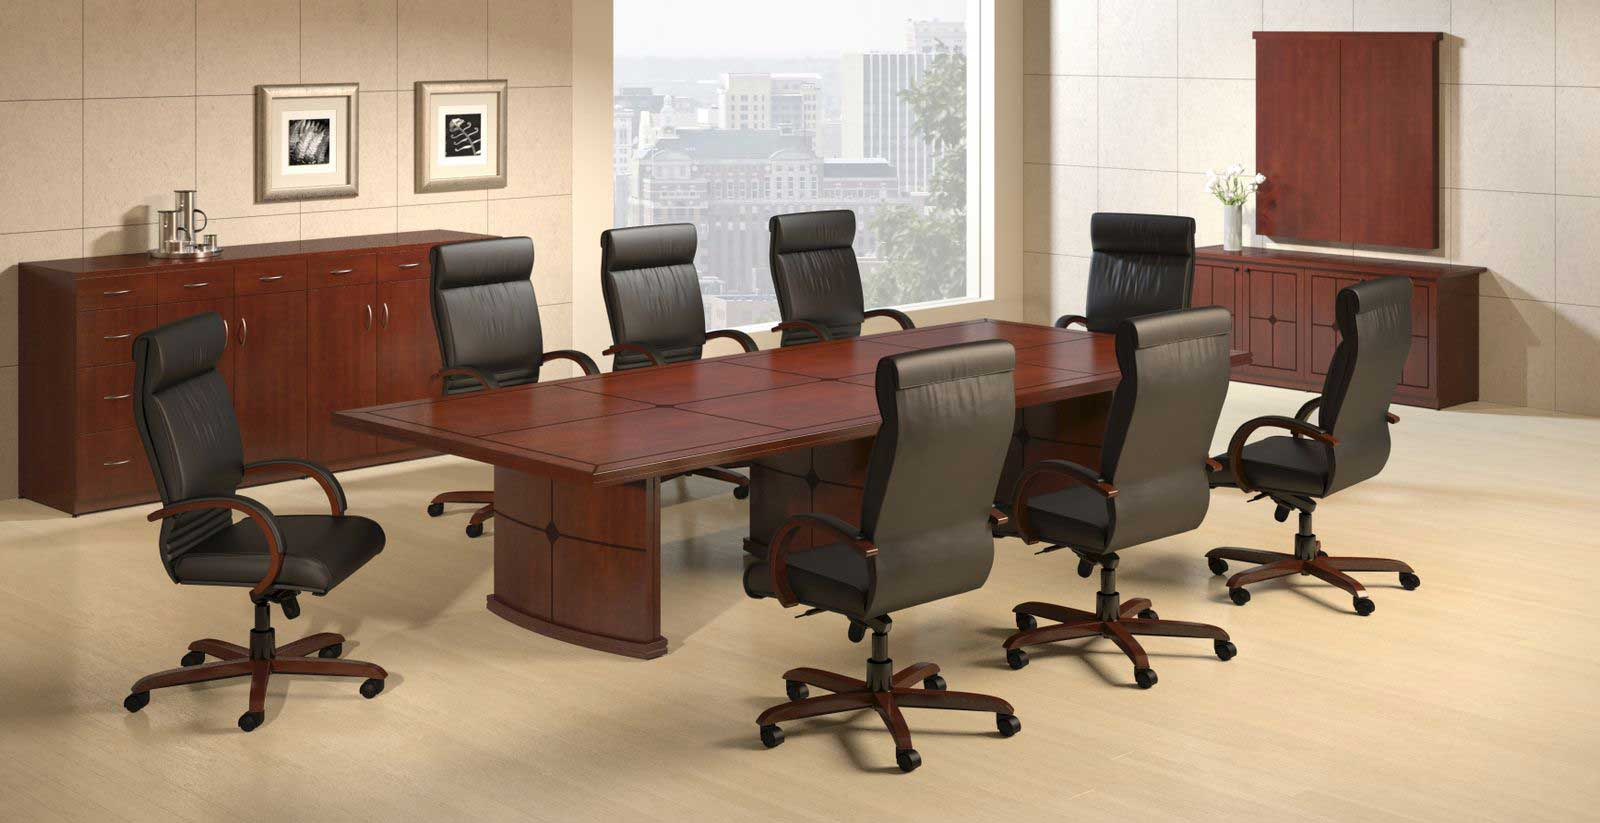 office conference room chairs. leave a reply cancel office conference room chairs i